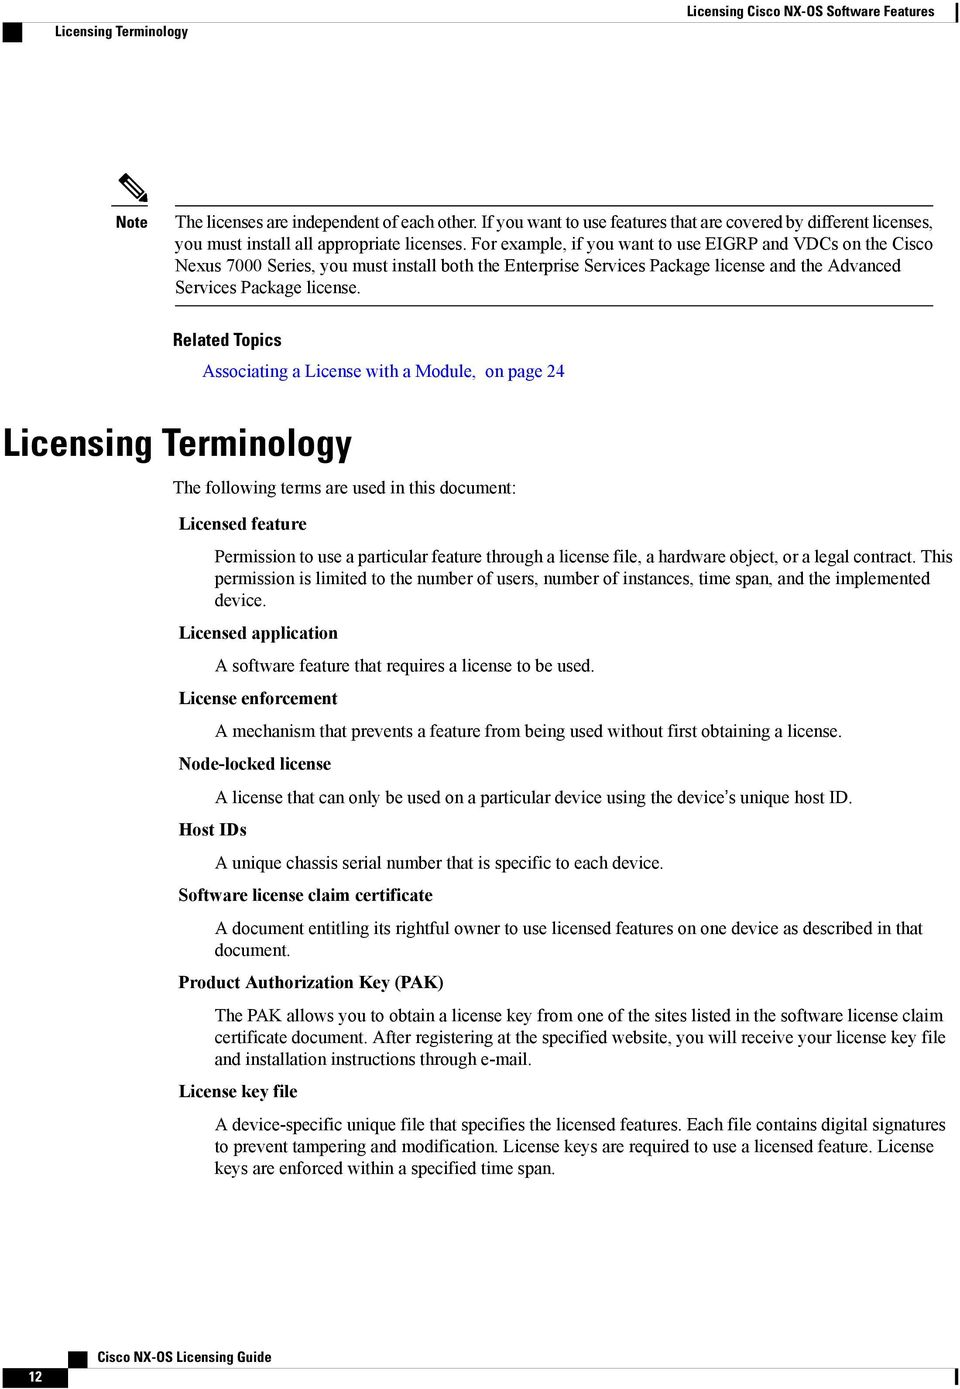 Licensing Cisco NX-OS Software Features - PDF